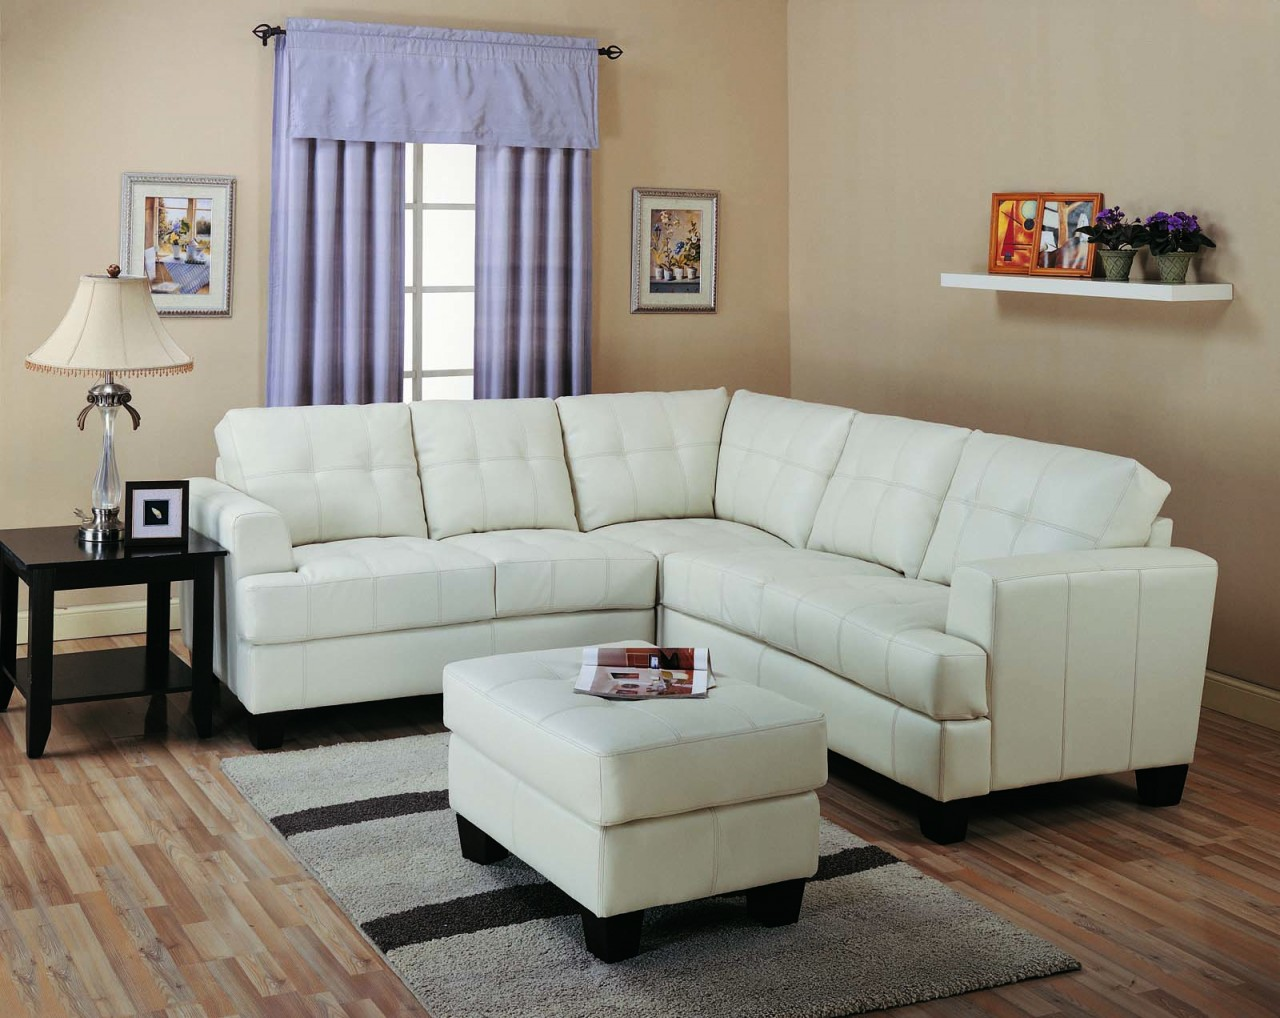 Types of best small sectional couches for small living for Small furniture for small living rooms